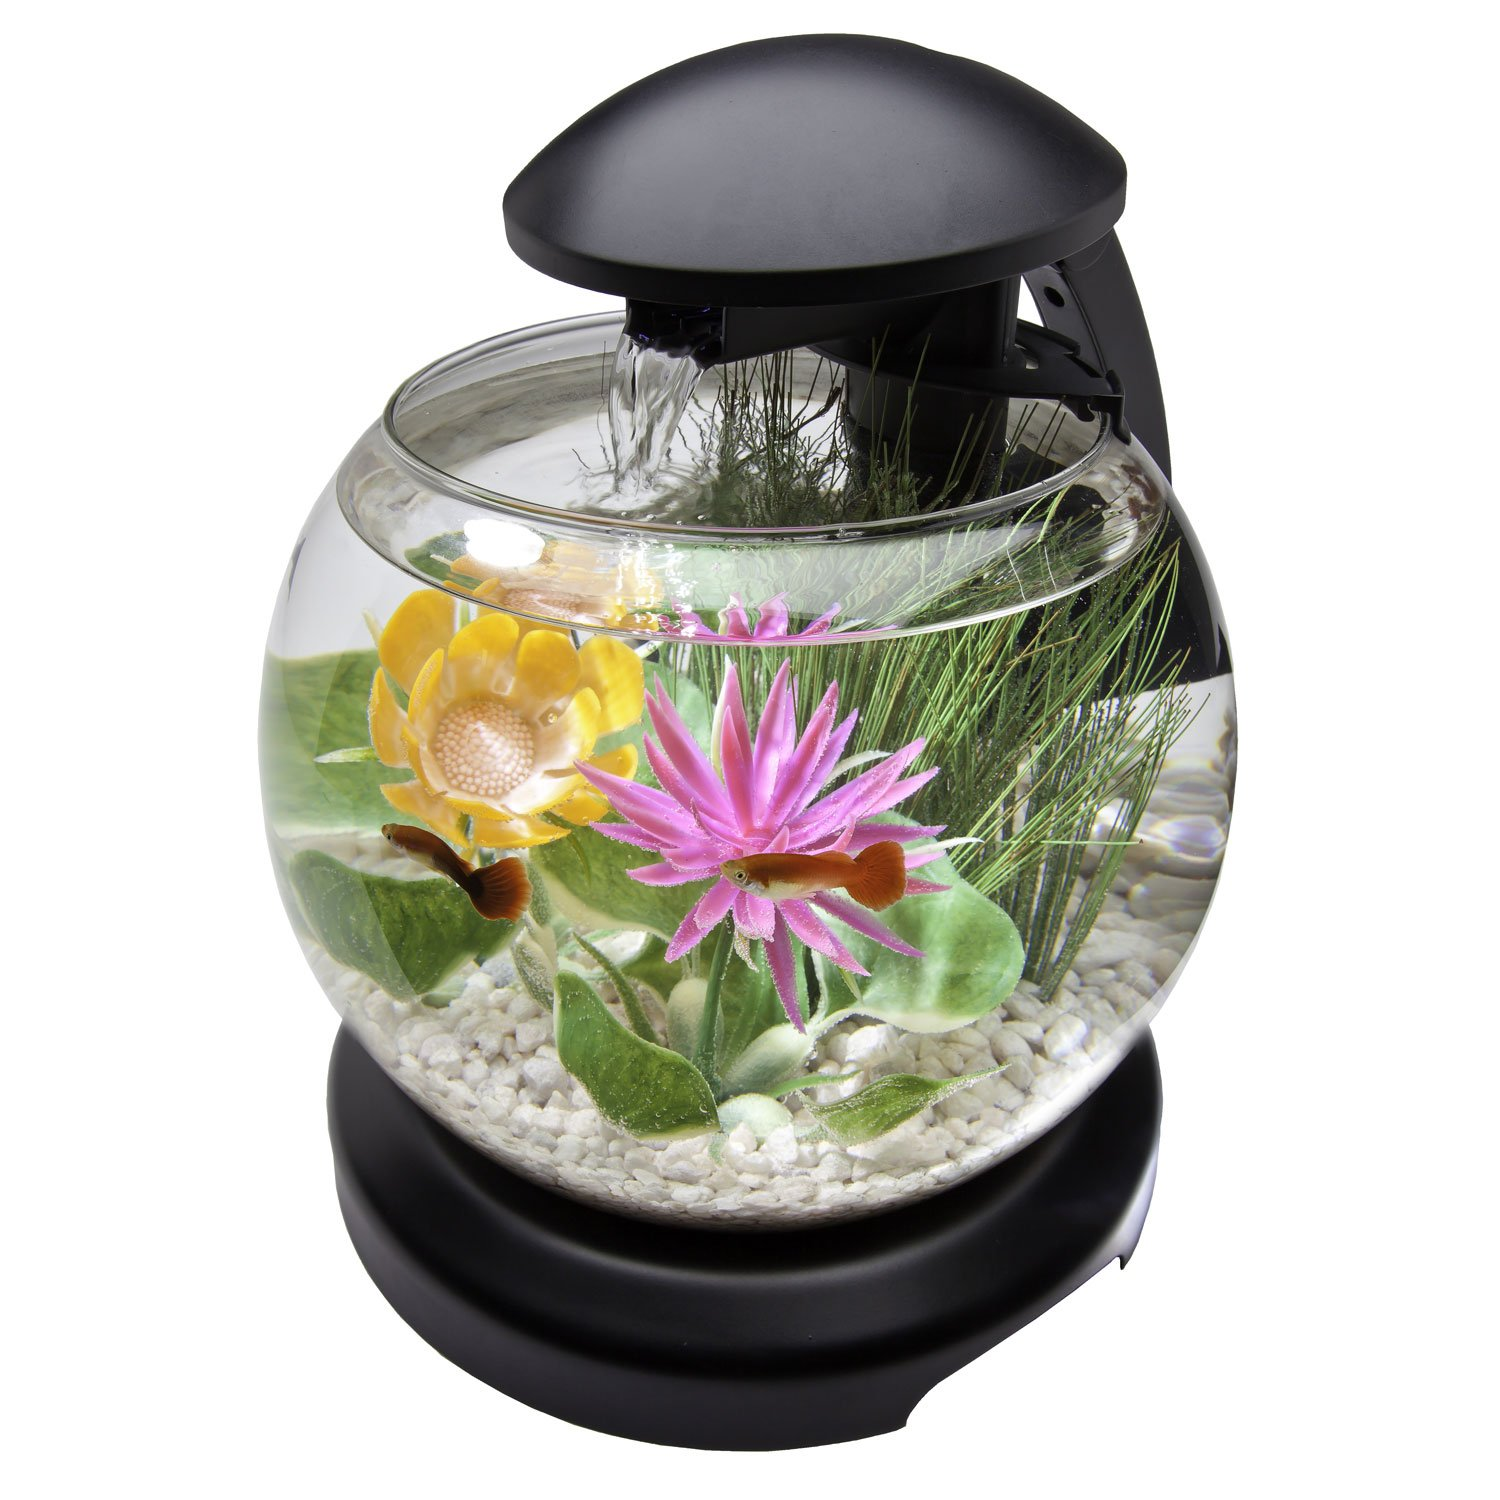 Tetra 1 8 Gallon Waterfall Globe Aquarium Kit